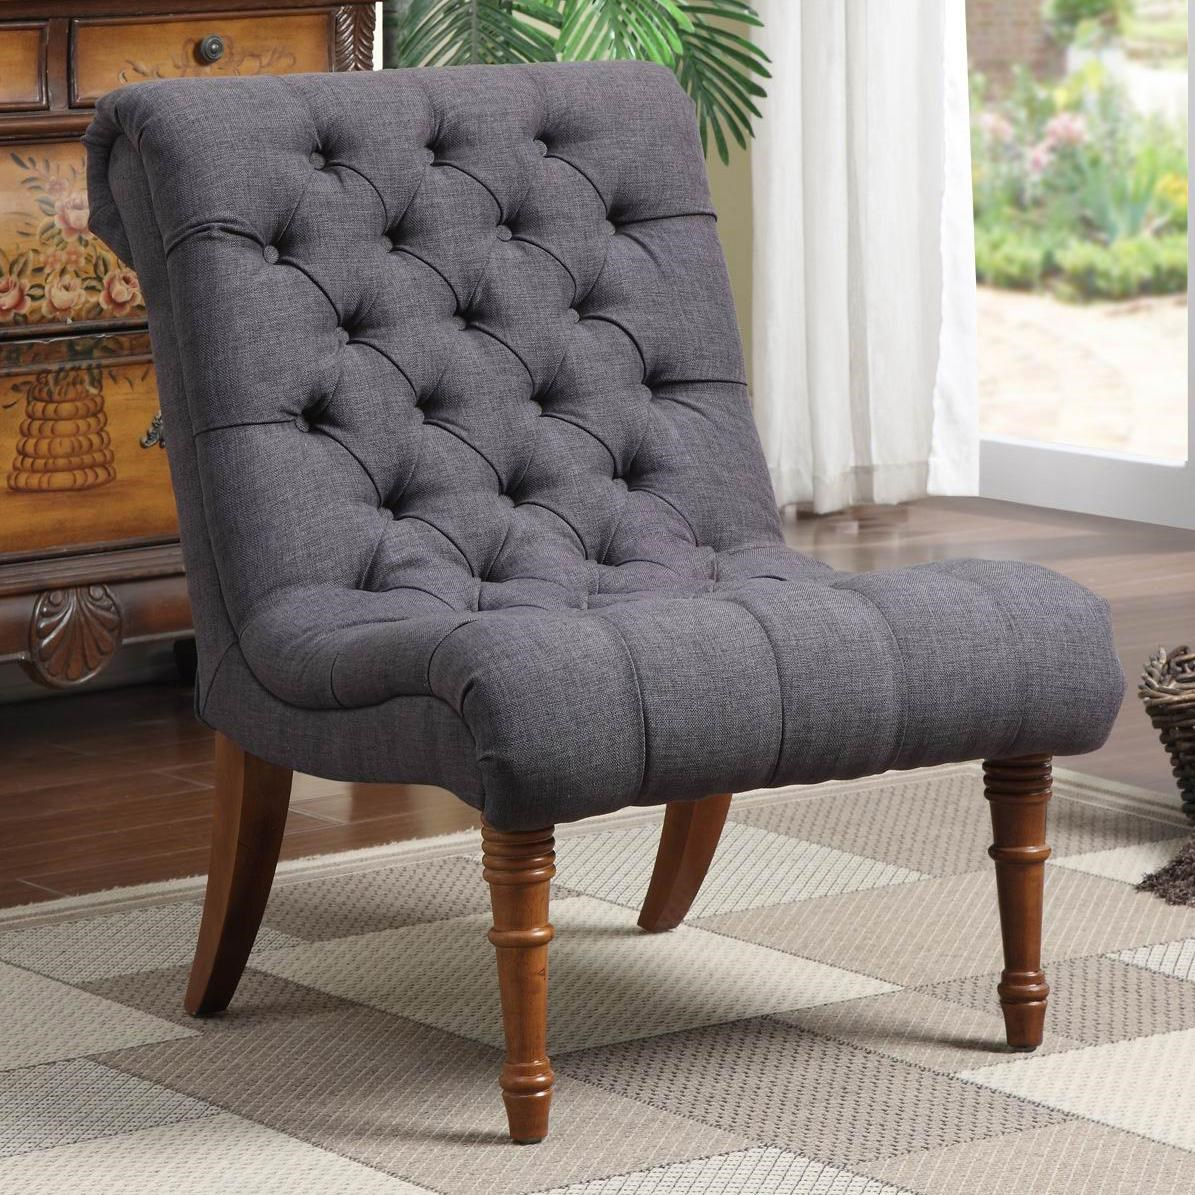 Coaster Accent Chair Accent Seating Tufted Accent Chair Without Arms By Coaster At Dunk Bright Furniture